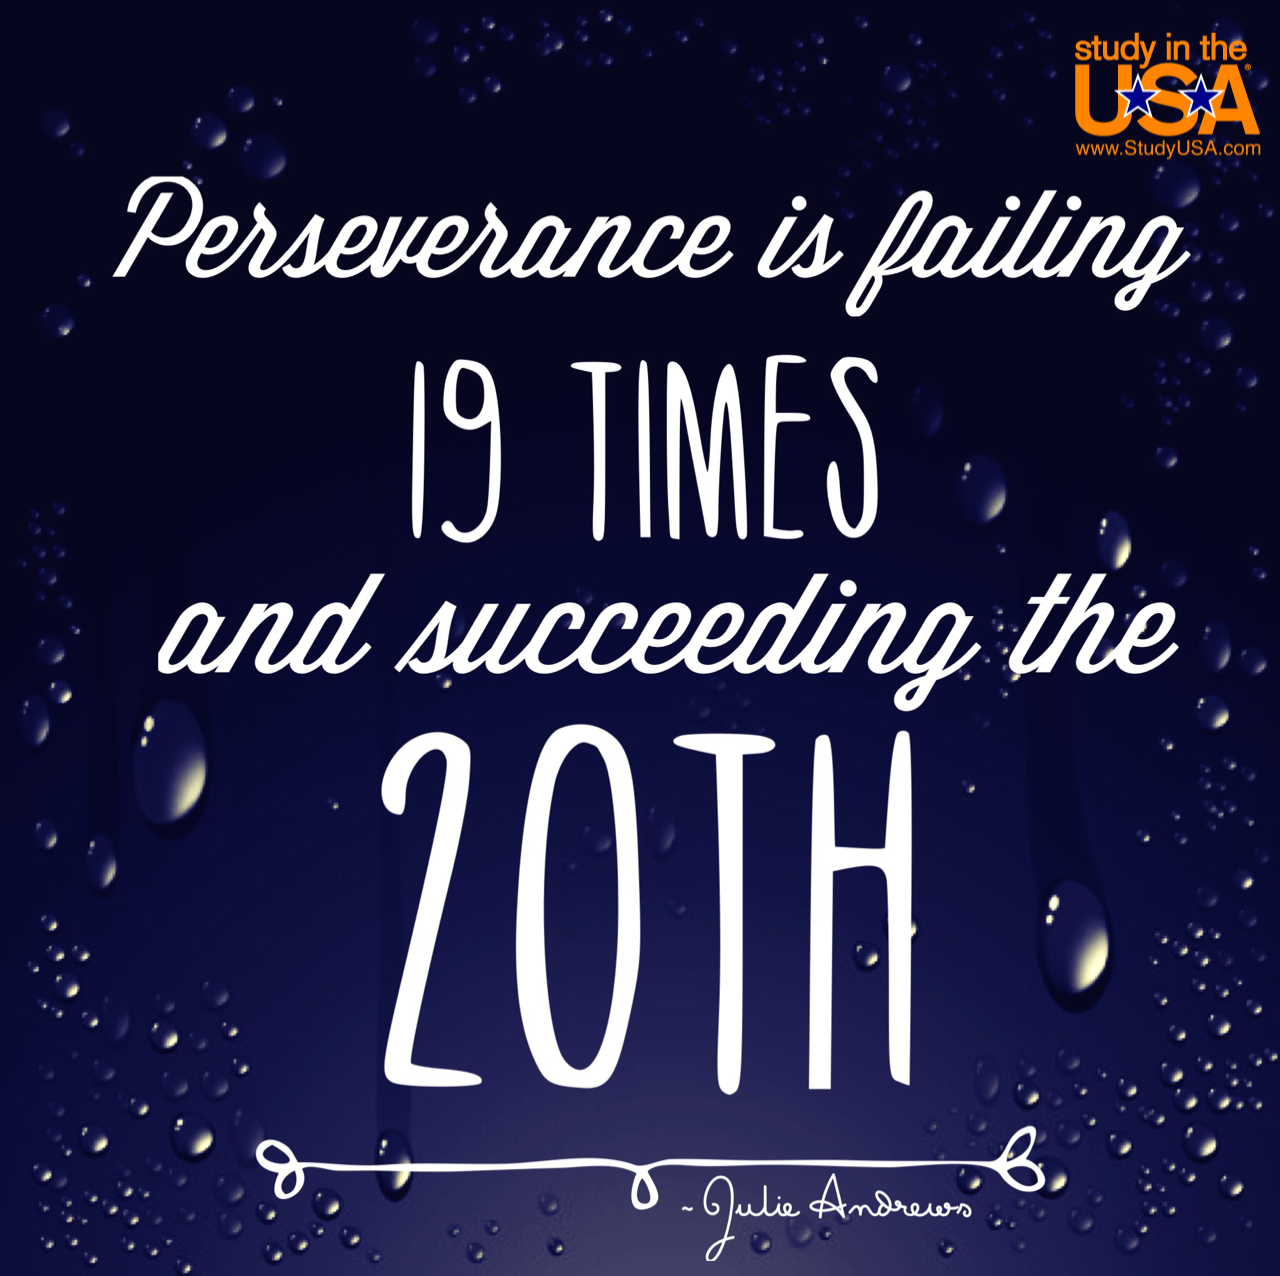 Succeeding Quotes Monday Quote Perseverance Is Failing 19 Times And Succeeding The